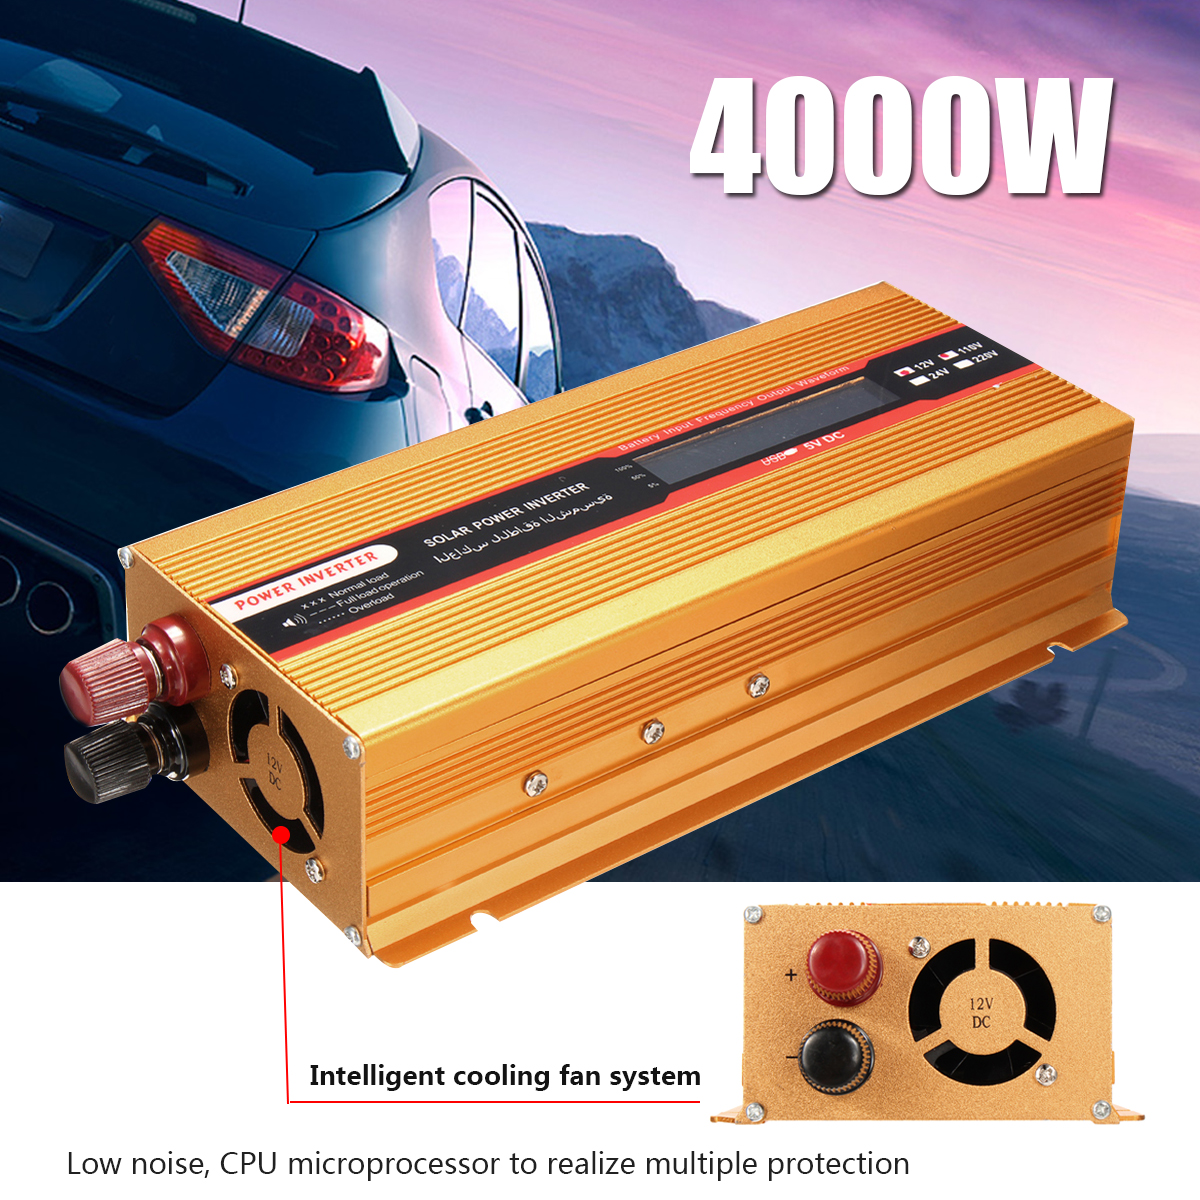 12/24V To AC 220/110V PEAK 4000W USB Modified Sine Wave Converter Car Power Inverter Voltage Transformer for Various Appliances peak 4000w 12 24v to ac 220 110v car power inverter usb modified sine wave converter voltage transformer for various appliances